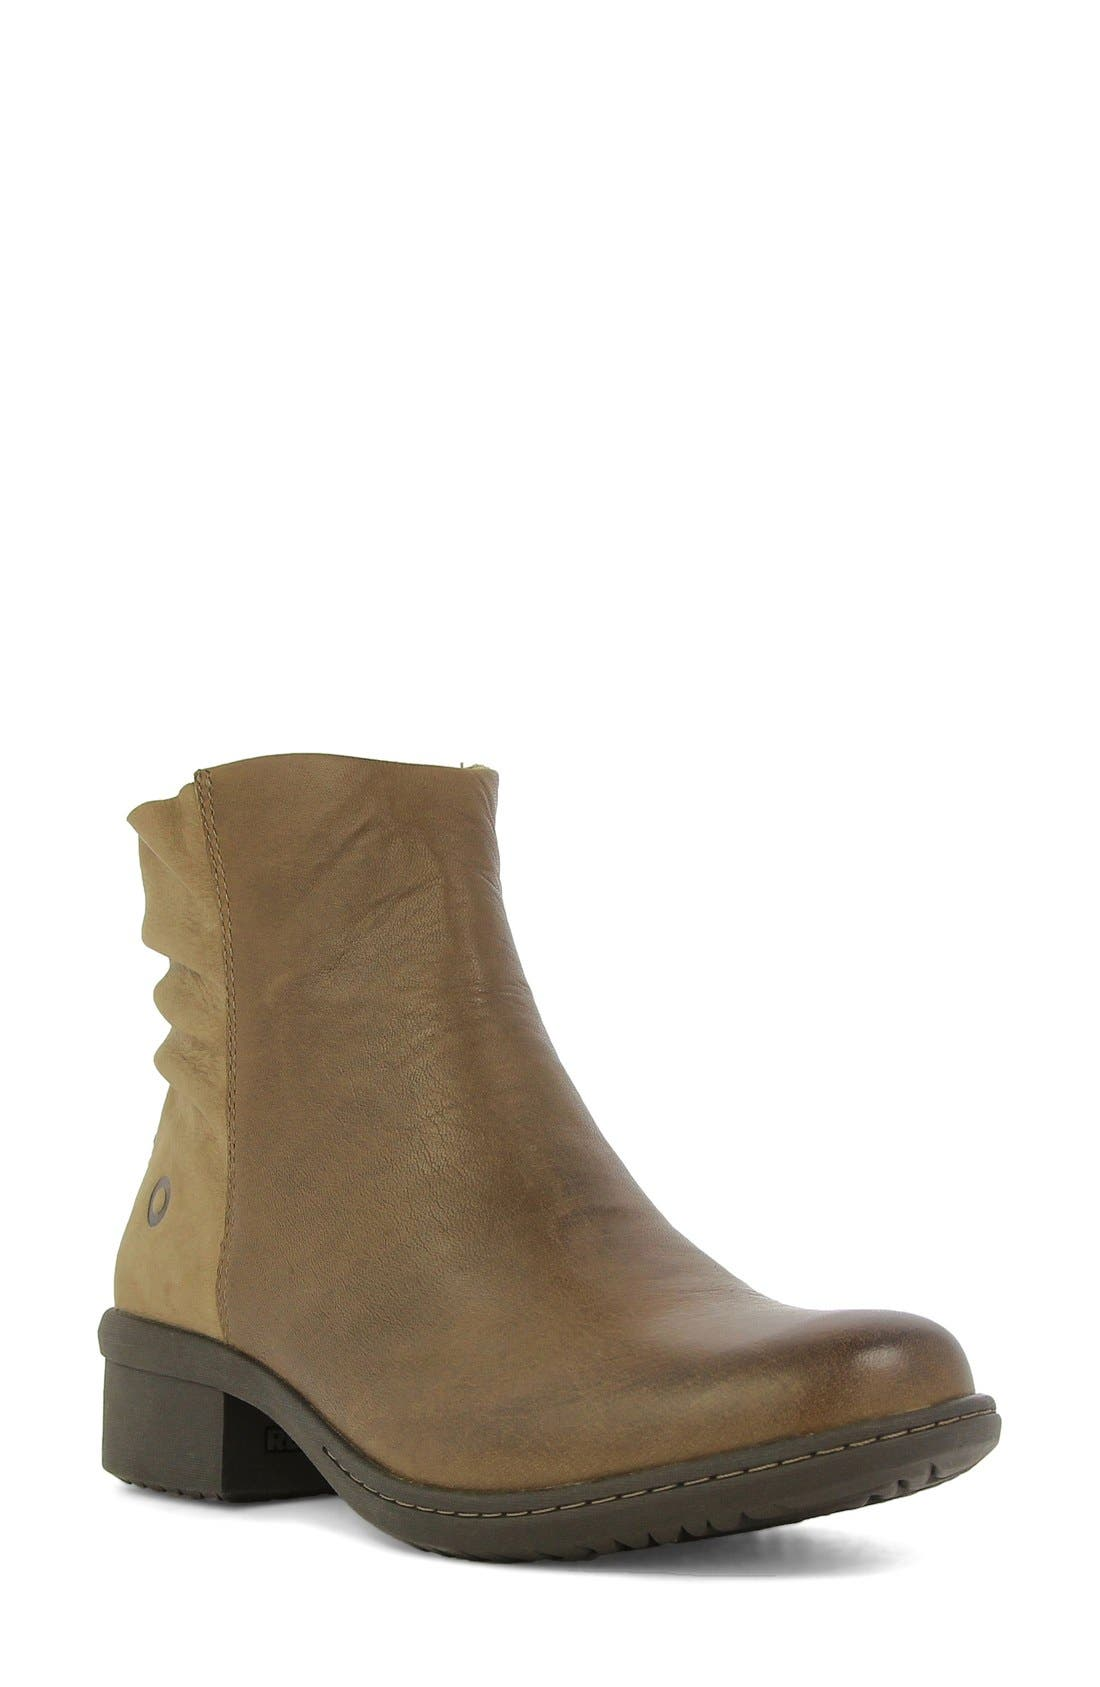 'Carly' Waterproof Short Boot,                             Main thumbnail 1, color,                             Hazelnut Leather